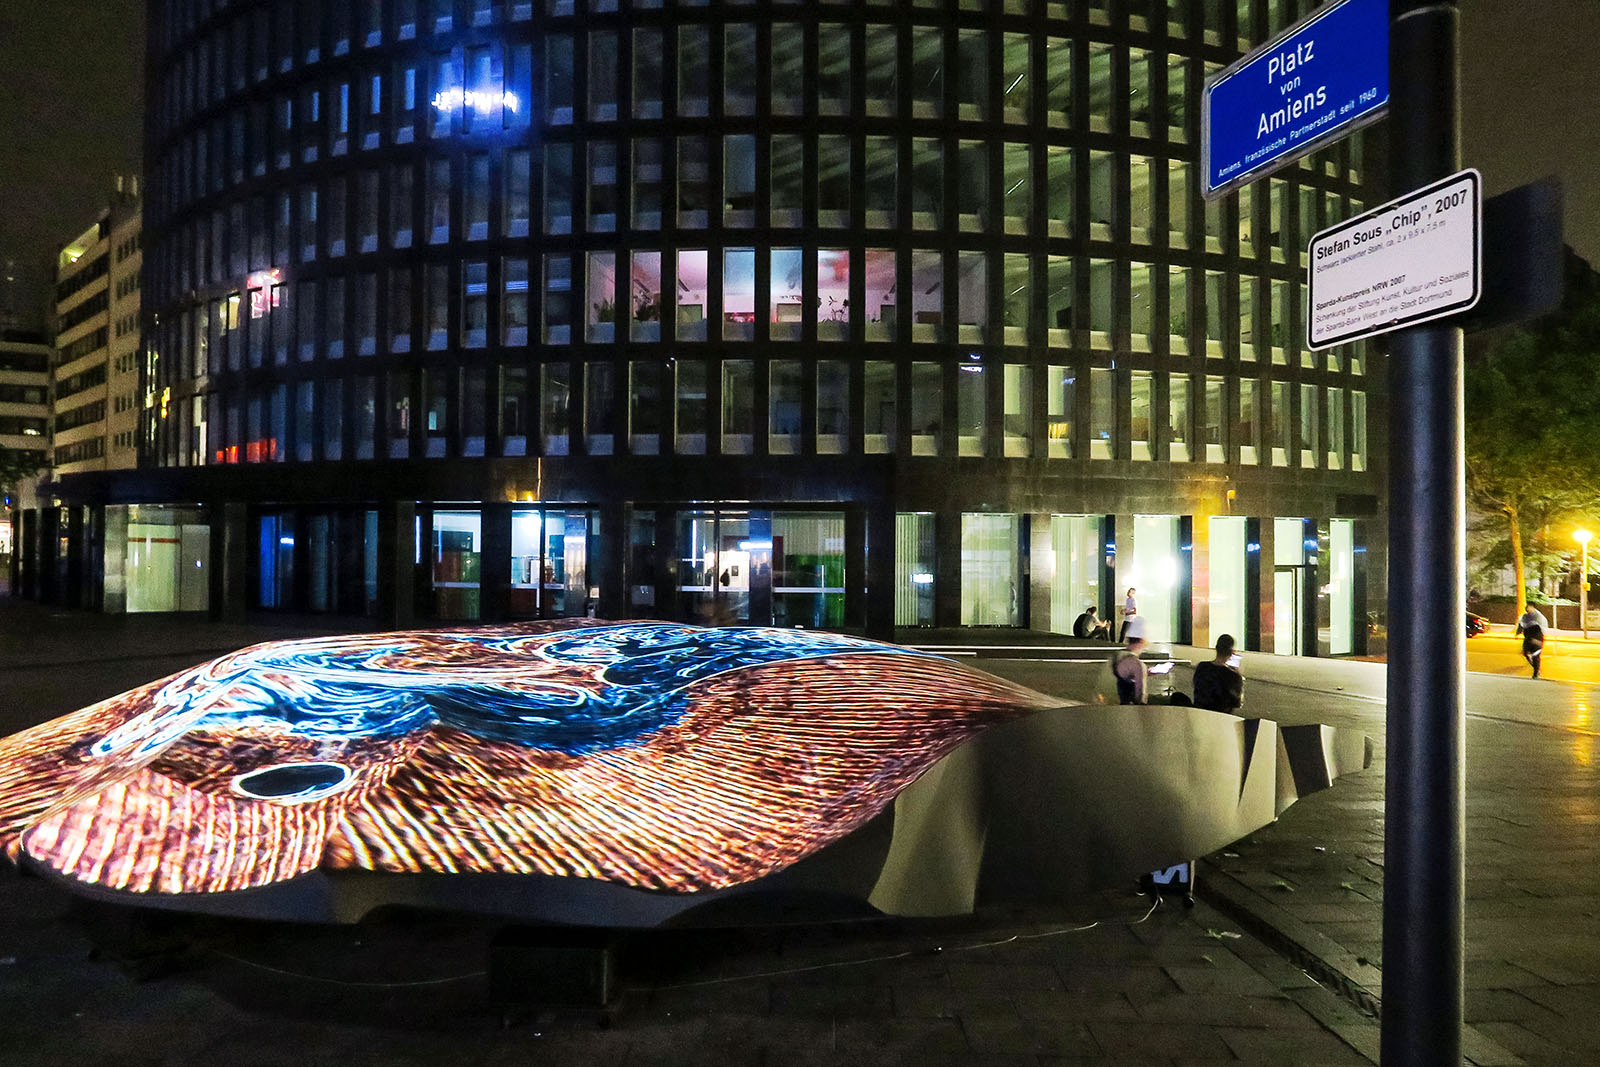 Videomapping AXIS 1.0 on the sculpture CHIP in Dortmund